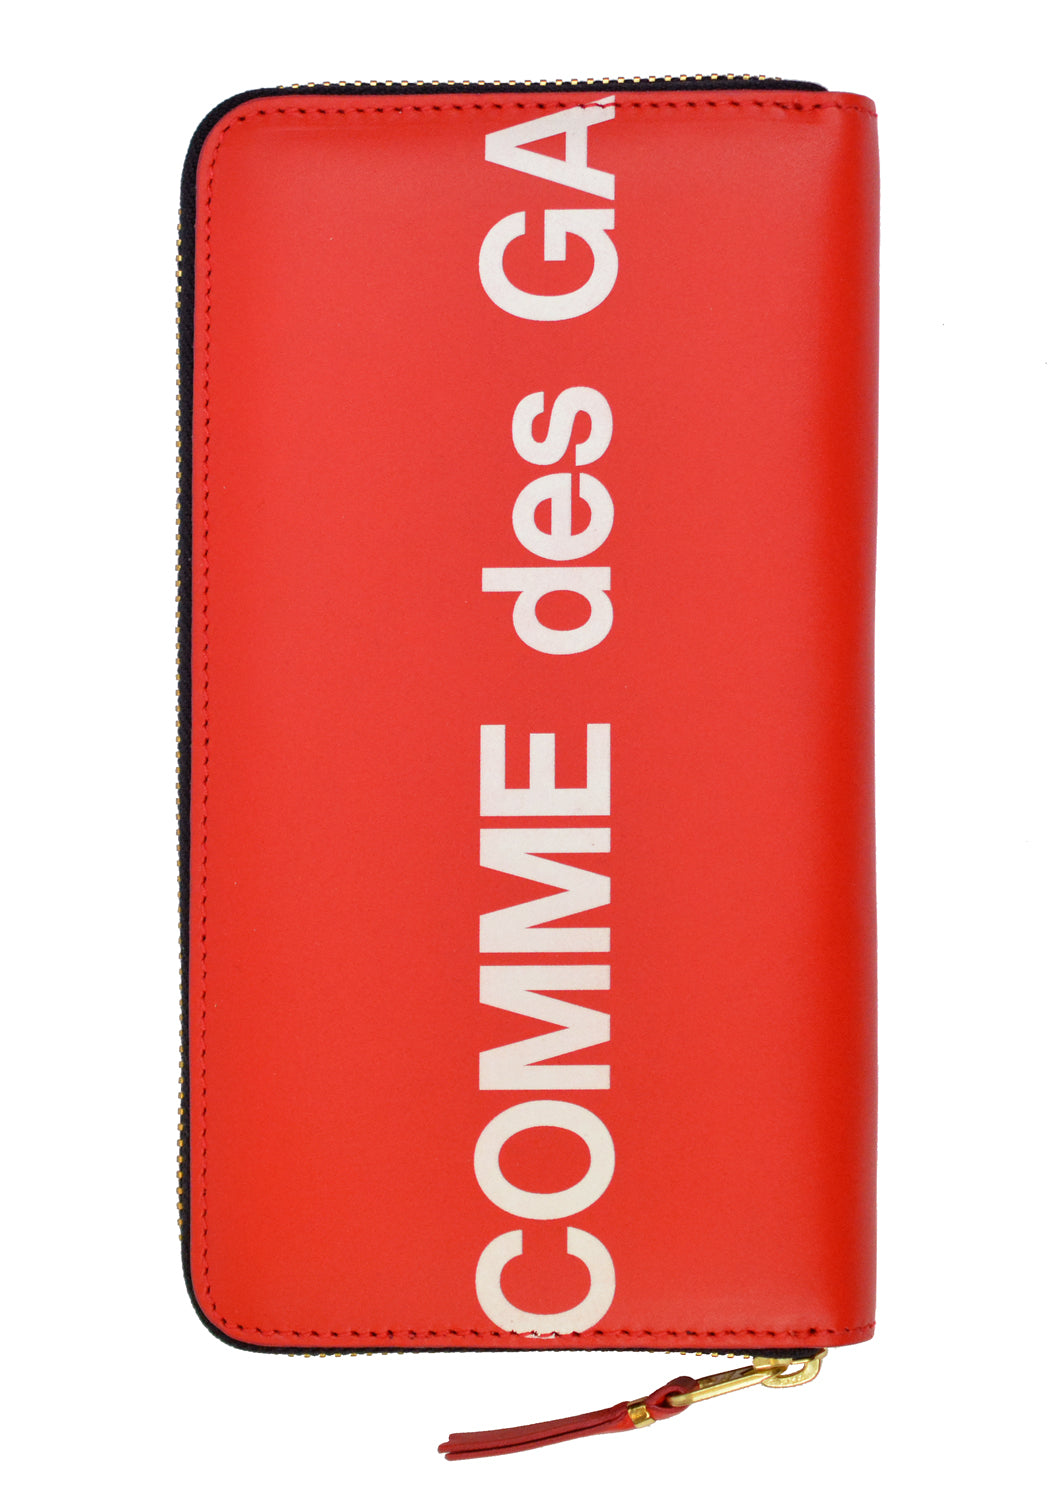 COMME DE GARCONS SA0111HL UNISEX WALLET HUGE LOGO RED - DOSHABURI Shop